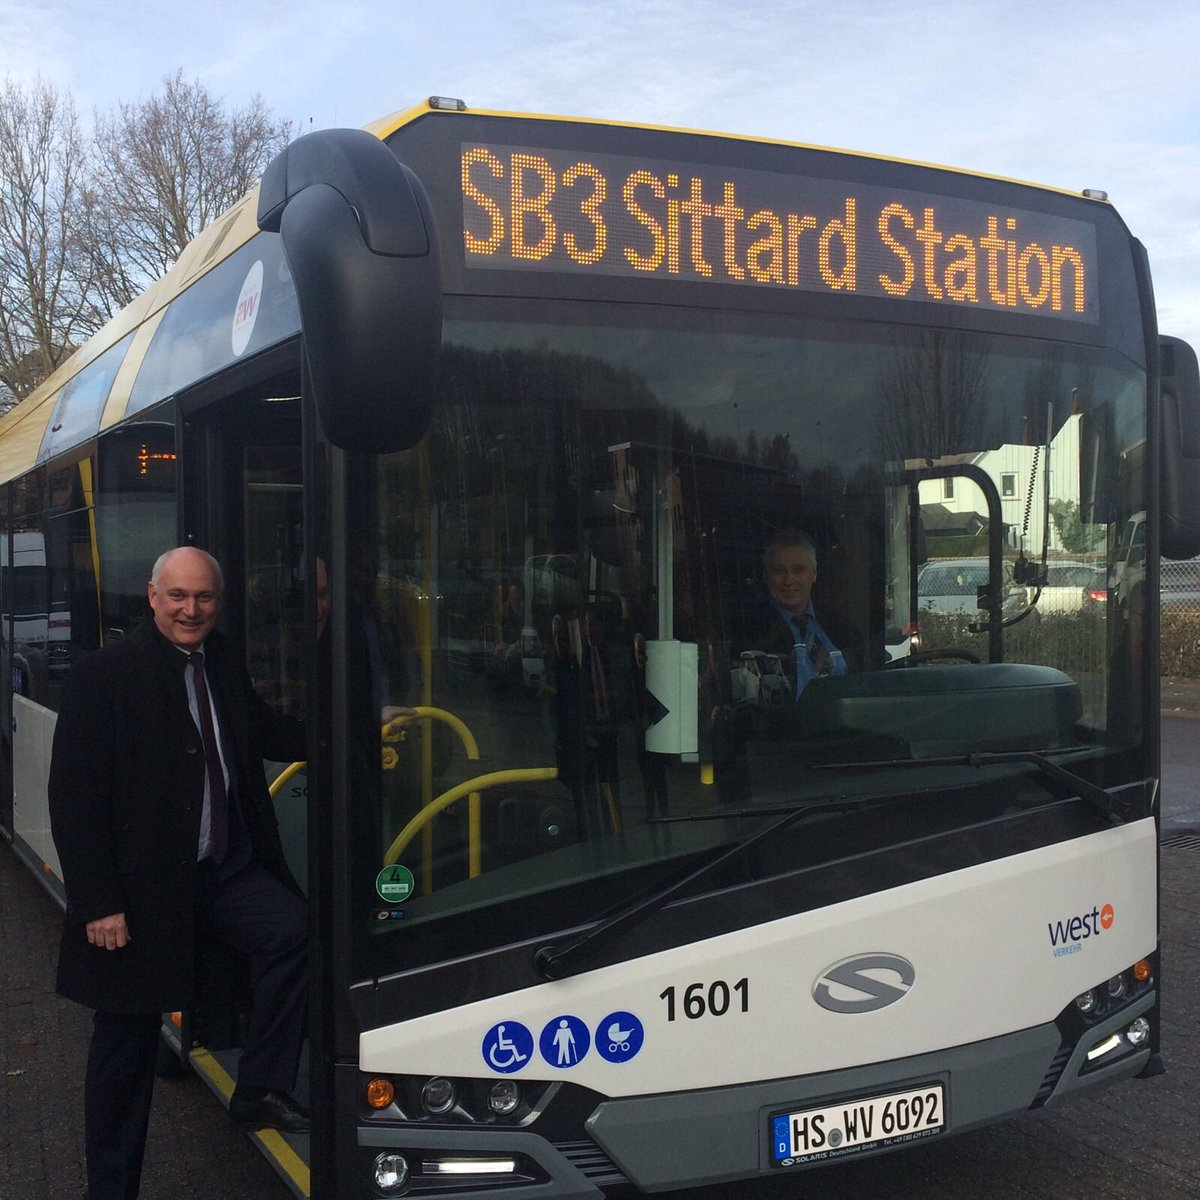 Image result for SB 3 geilenkirchen bus